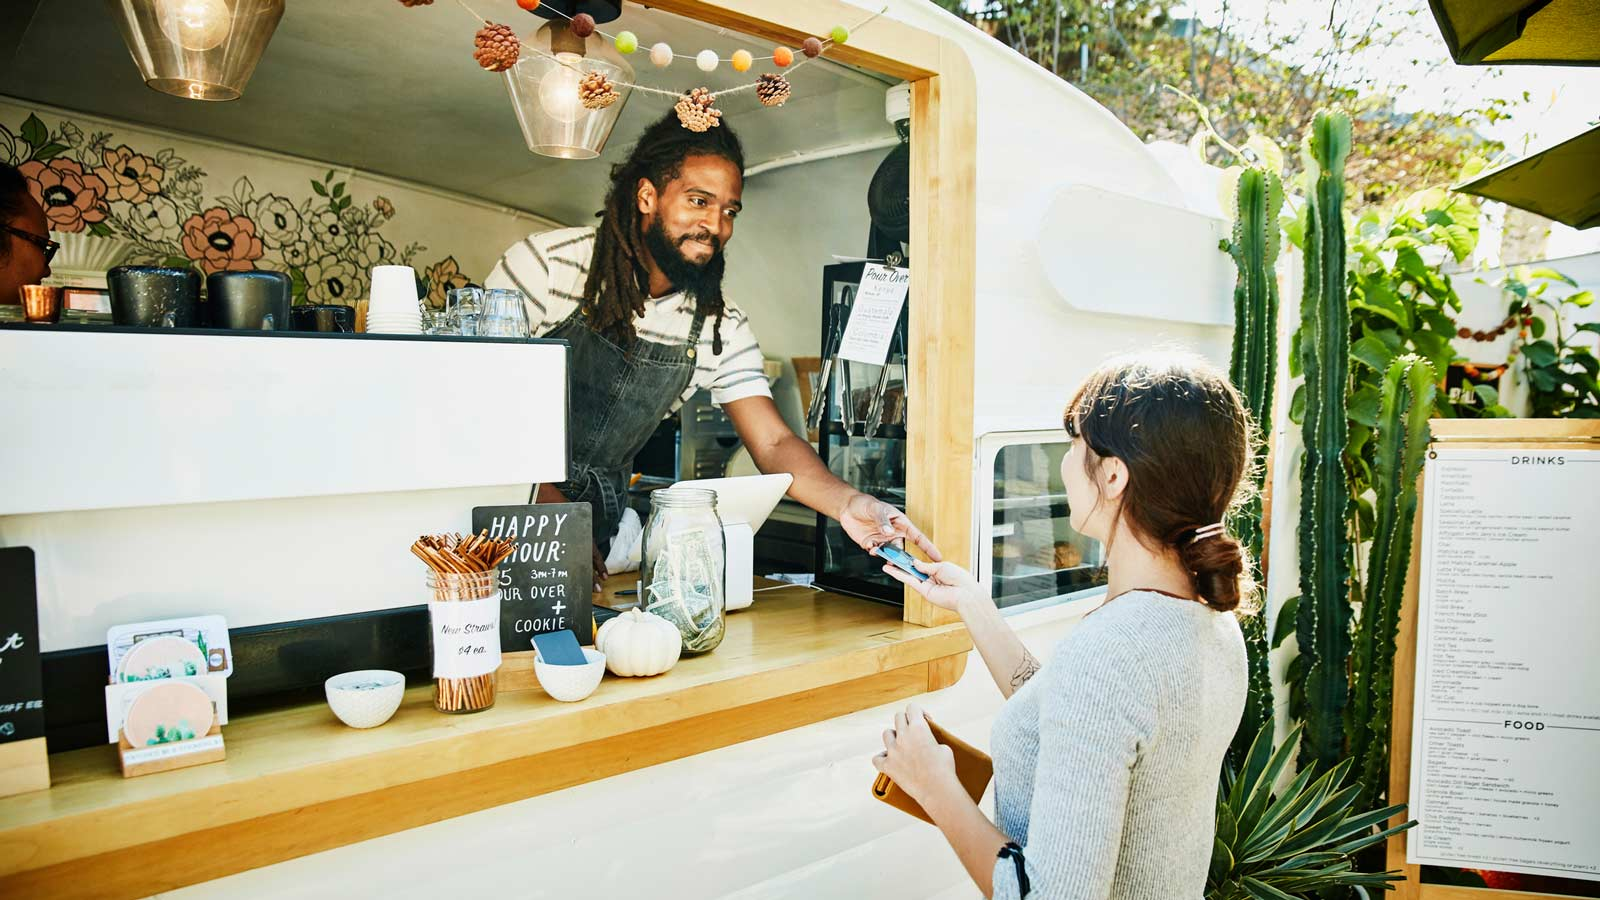 Food truck merchant accepting credit card payment.